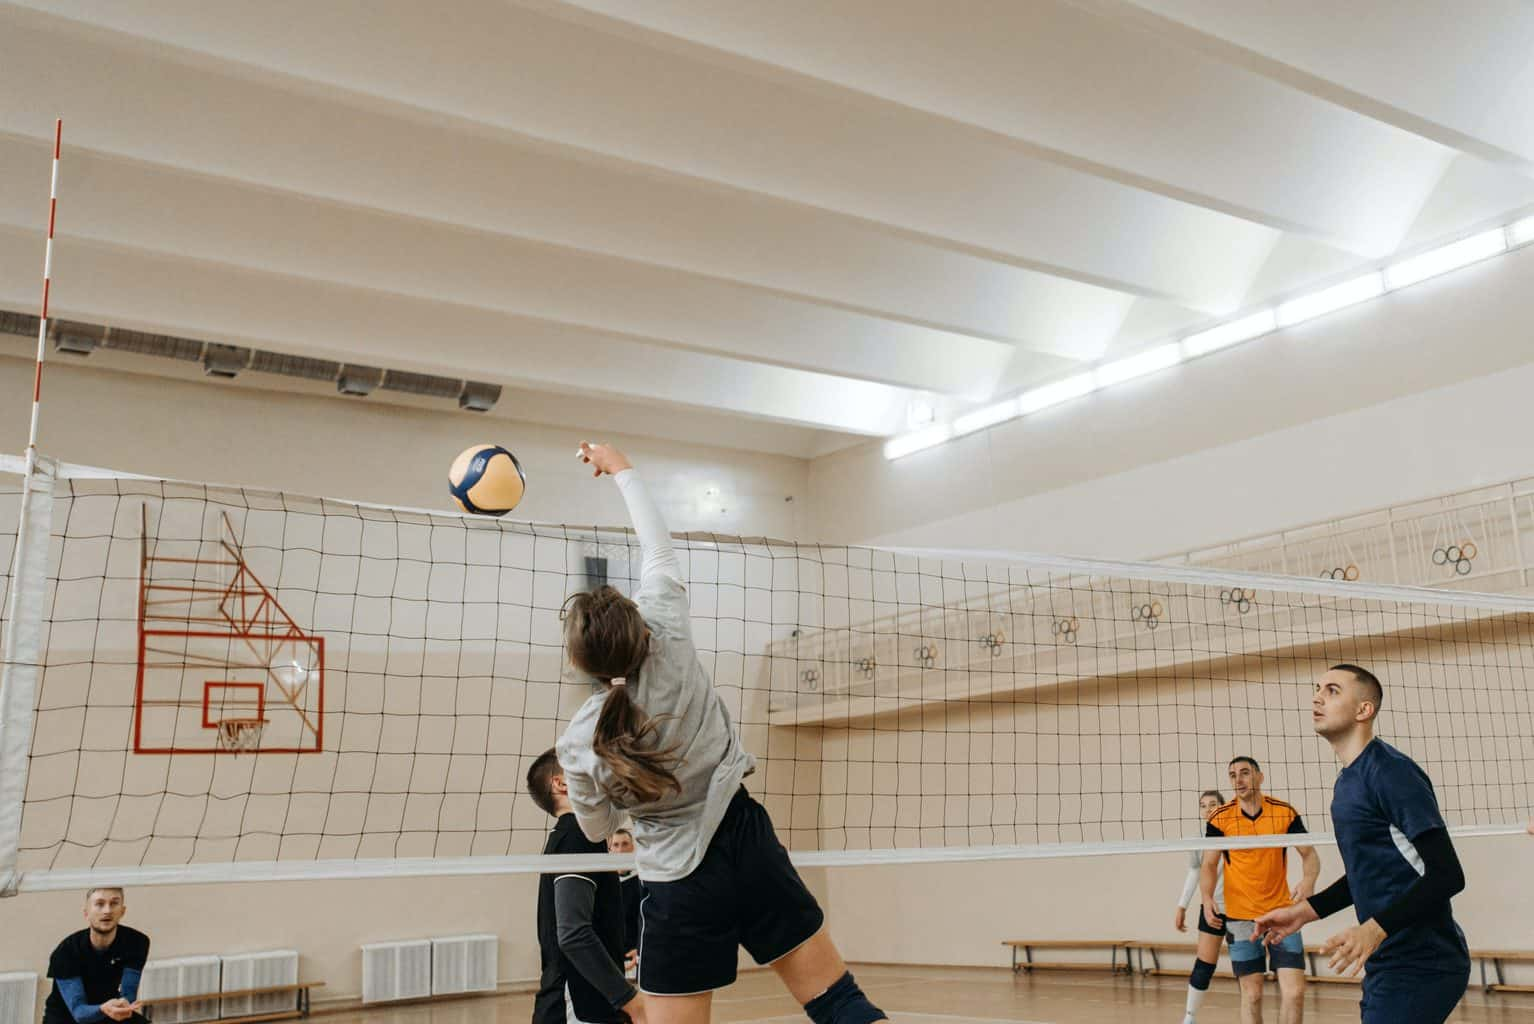 A volleyball player spiking th ball over the net